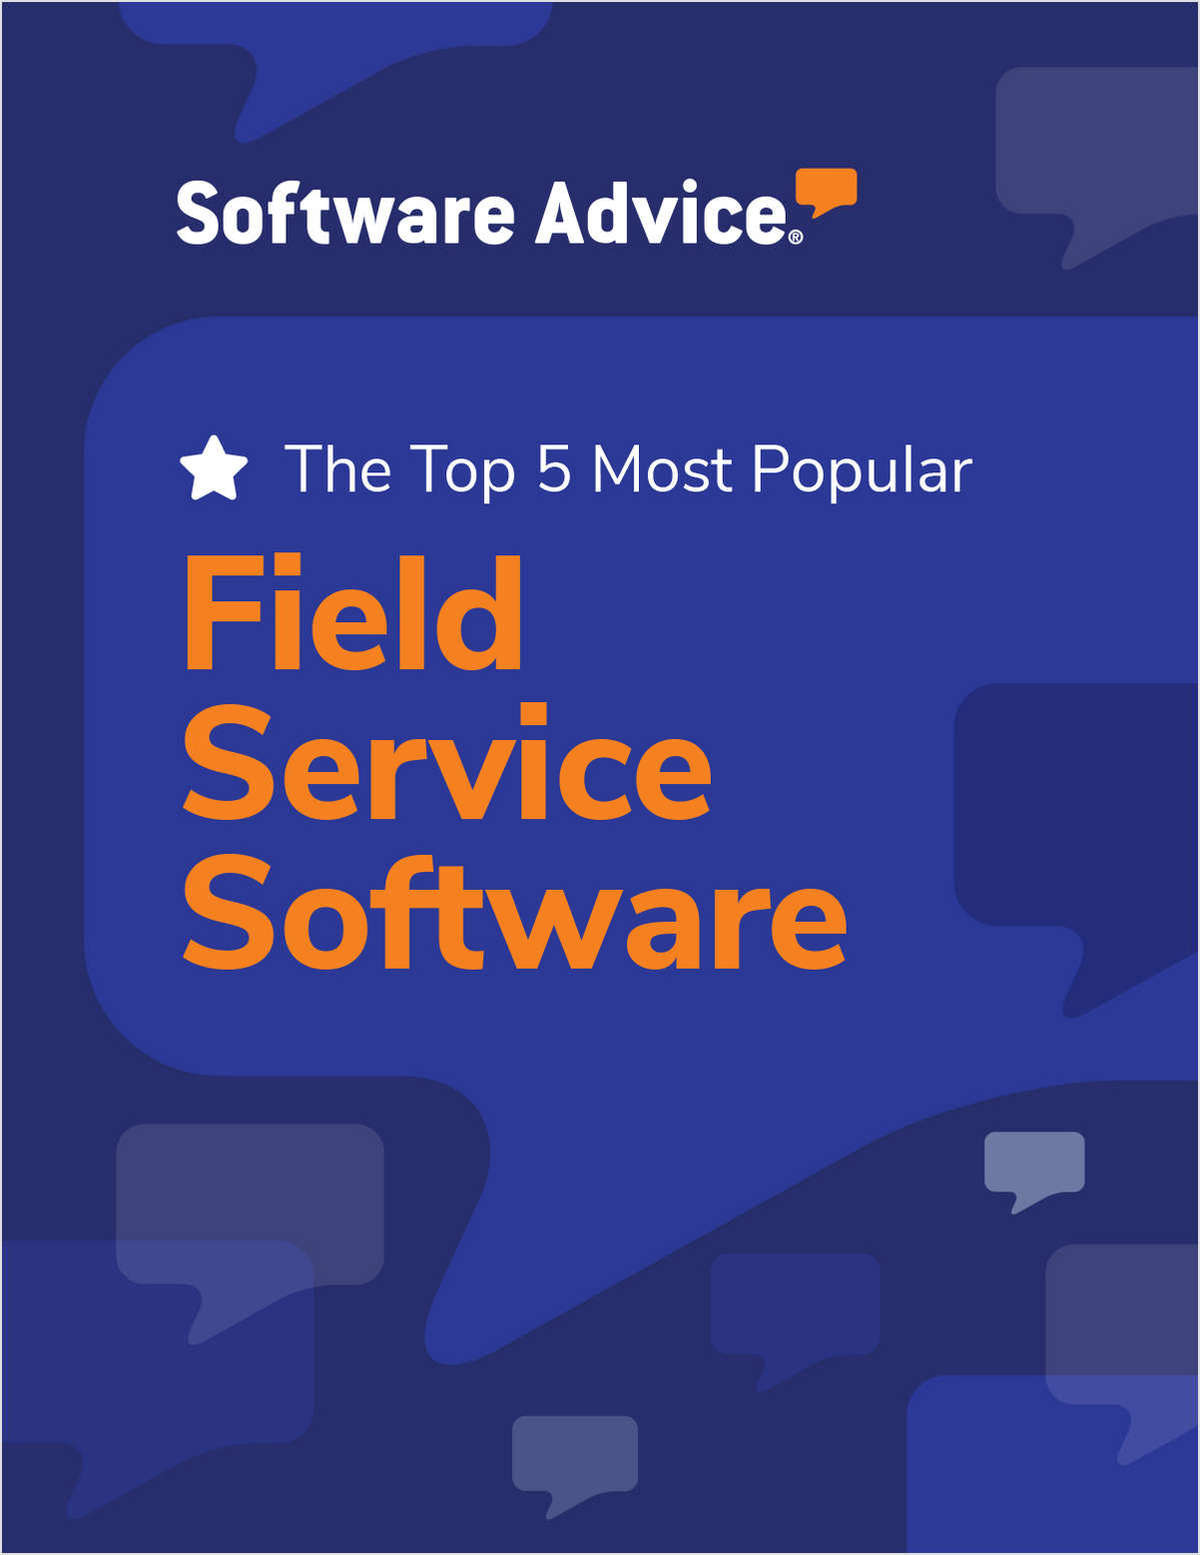 Software Advice's Top 5: Most Popular Field Service Software